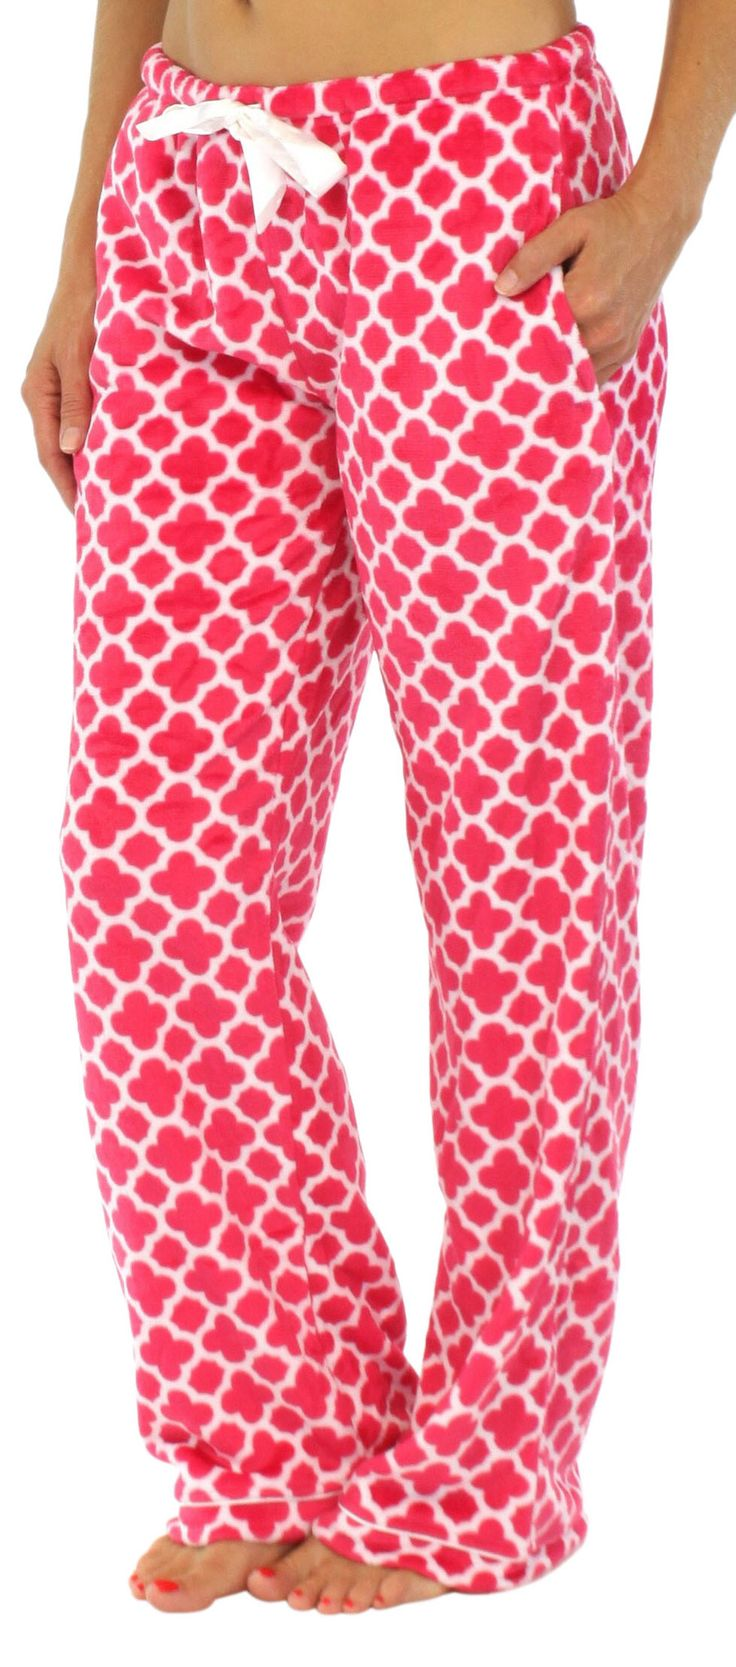 PajamaMania fleece pajama pants are made of plush fleece that will keep you warm all winter long - Fleece - Elastic waistband - Satin drawstring - Side pockets - Satin trim - Machine wash - Model is 5